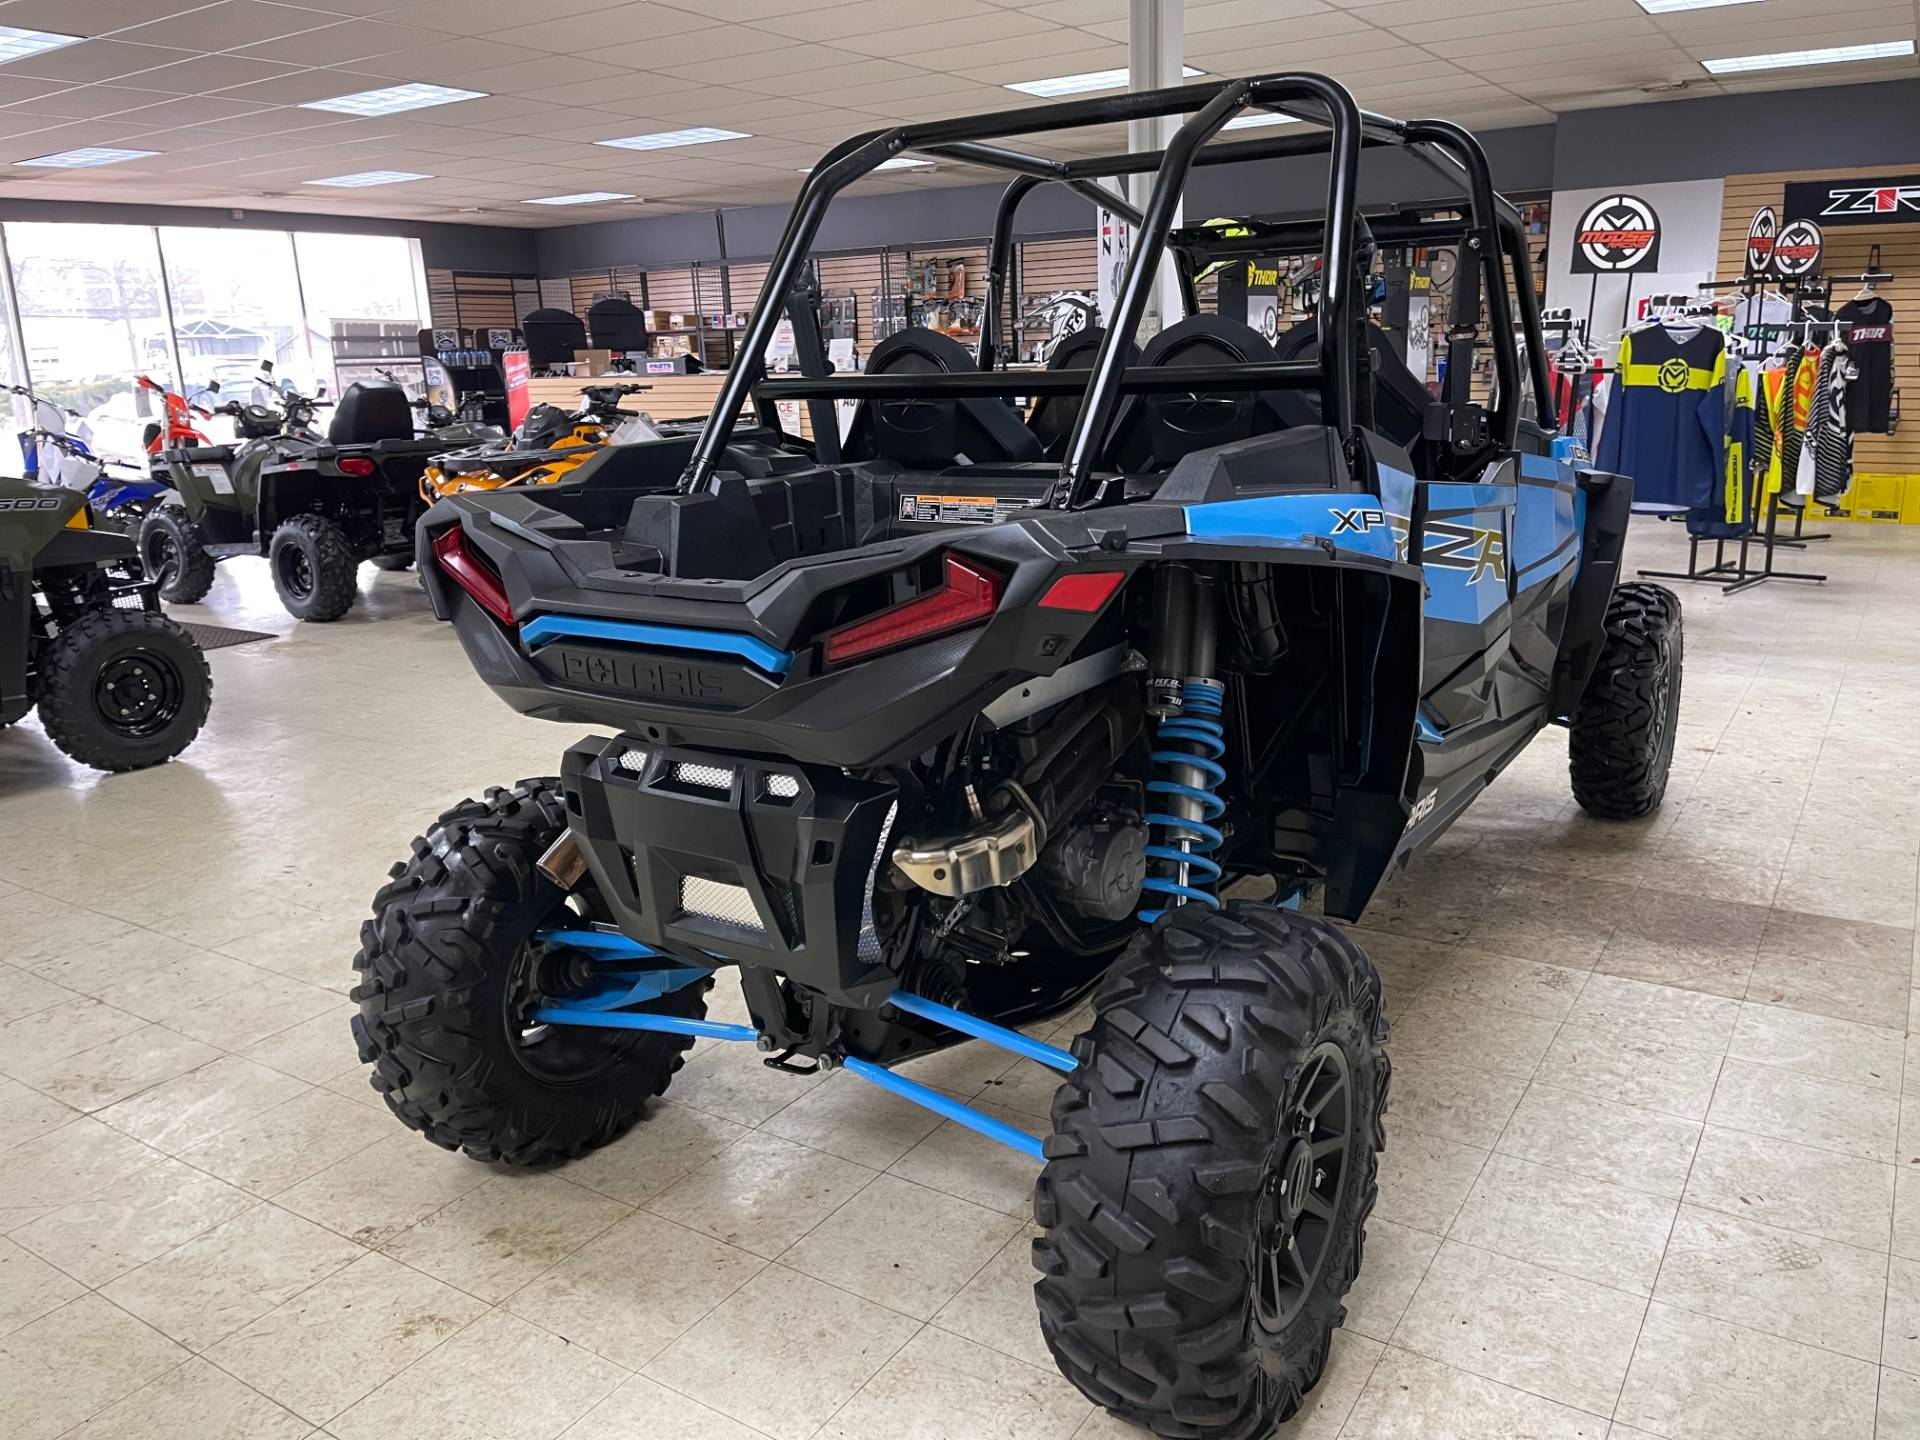 2020 Polaris RZR XP 4 1000 in Herkimer, New York - Photo 11